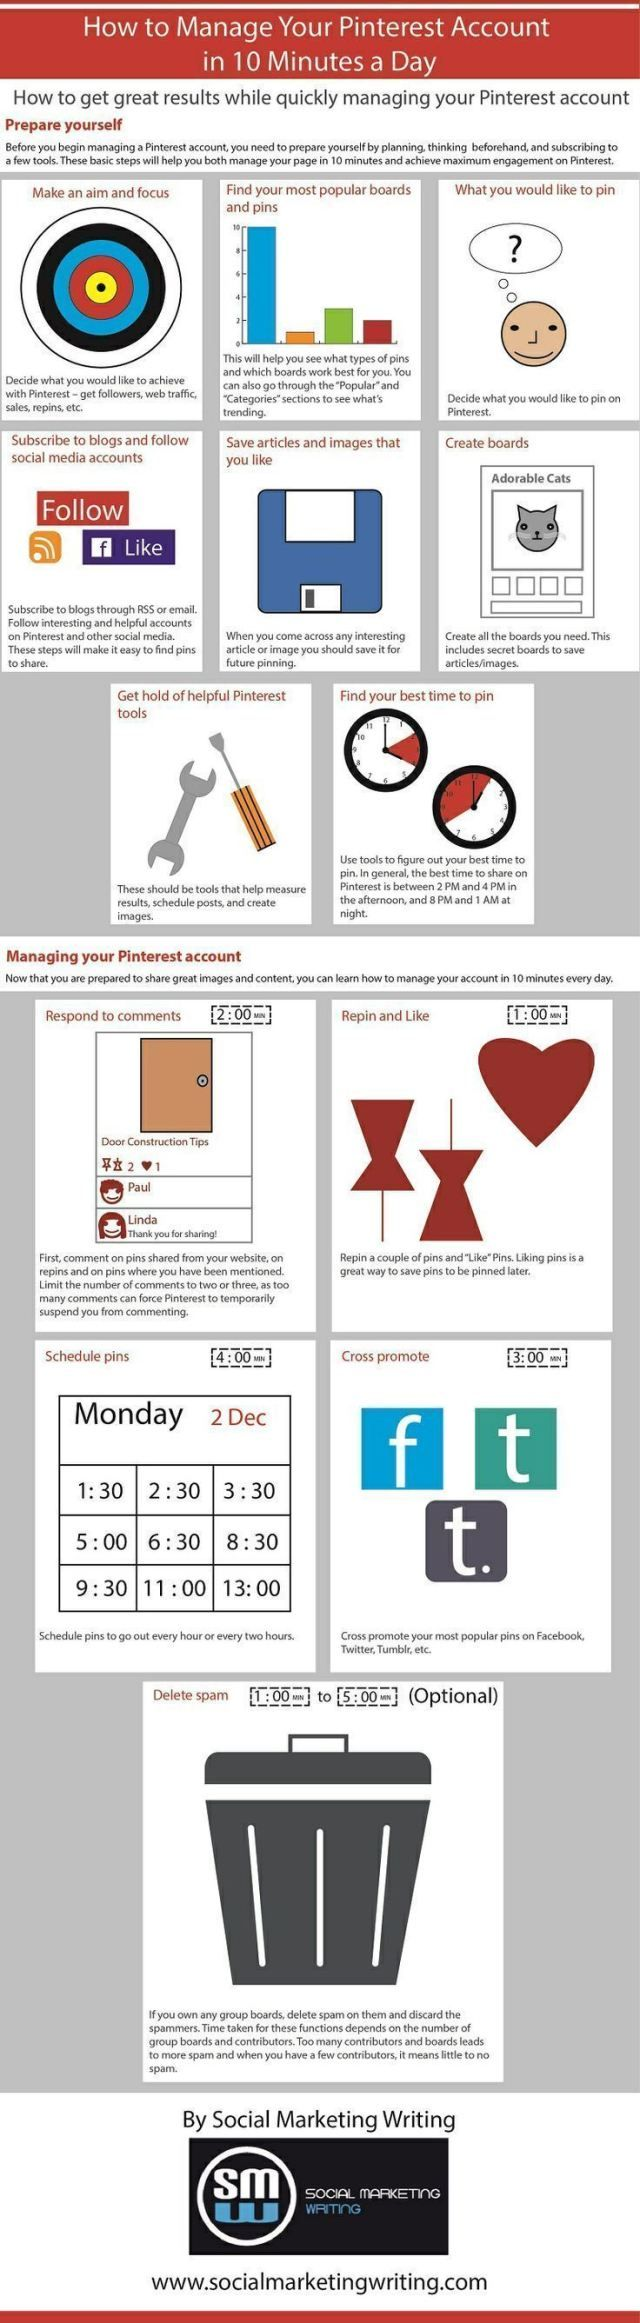 How to manage your Pinterest account in 10 minutes a day #infografia #infographic #socialmedia Internet Site, Social Media Marketing, Social Marketing,  Website, Facebook Like, Web Site, Pinterest Accountable, 10 Minute, Socialmedia